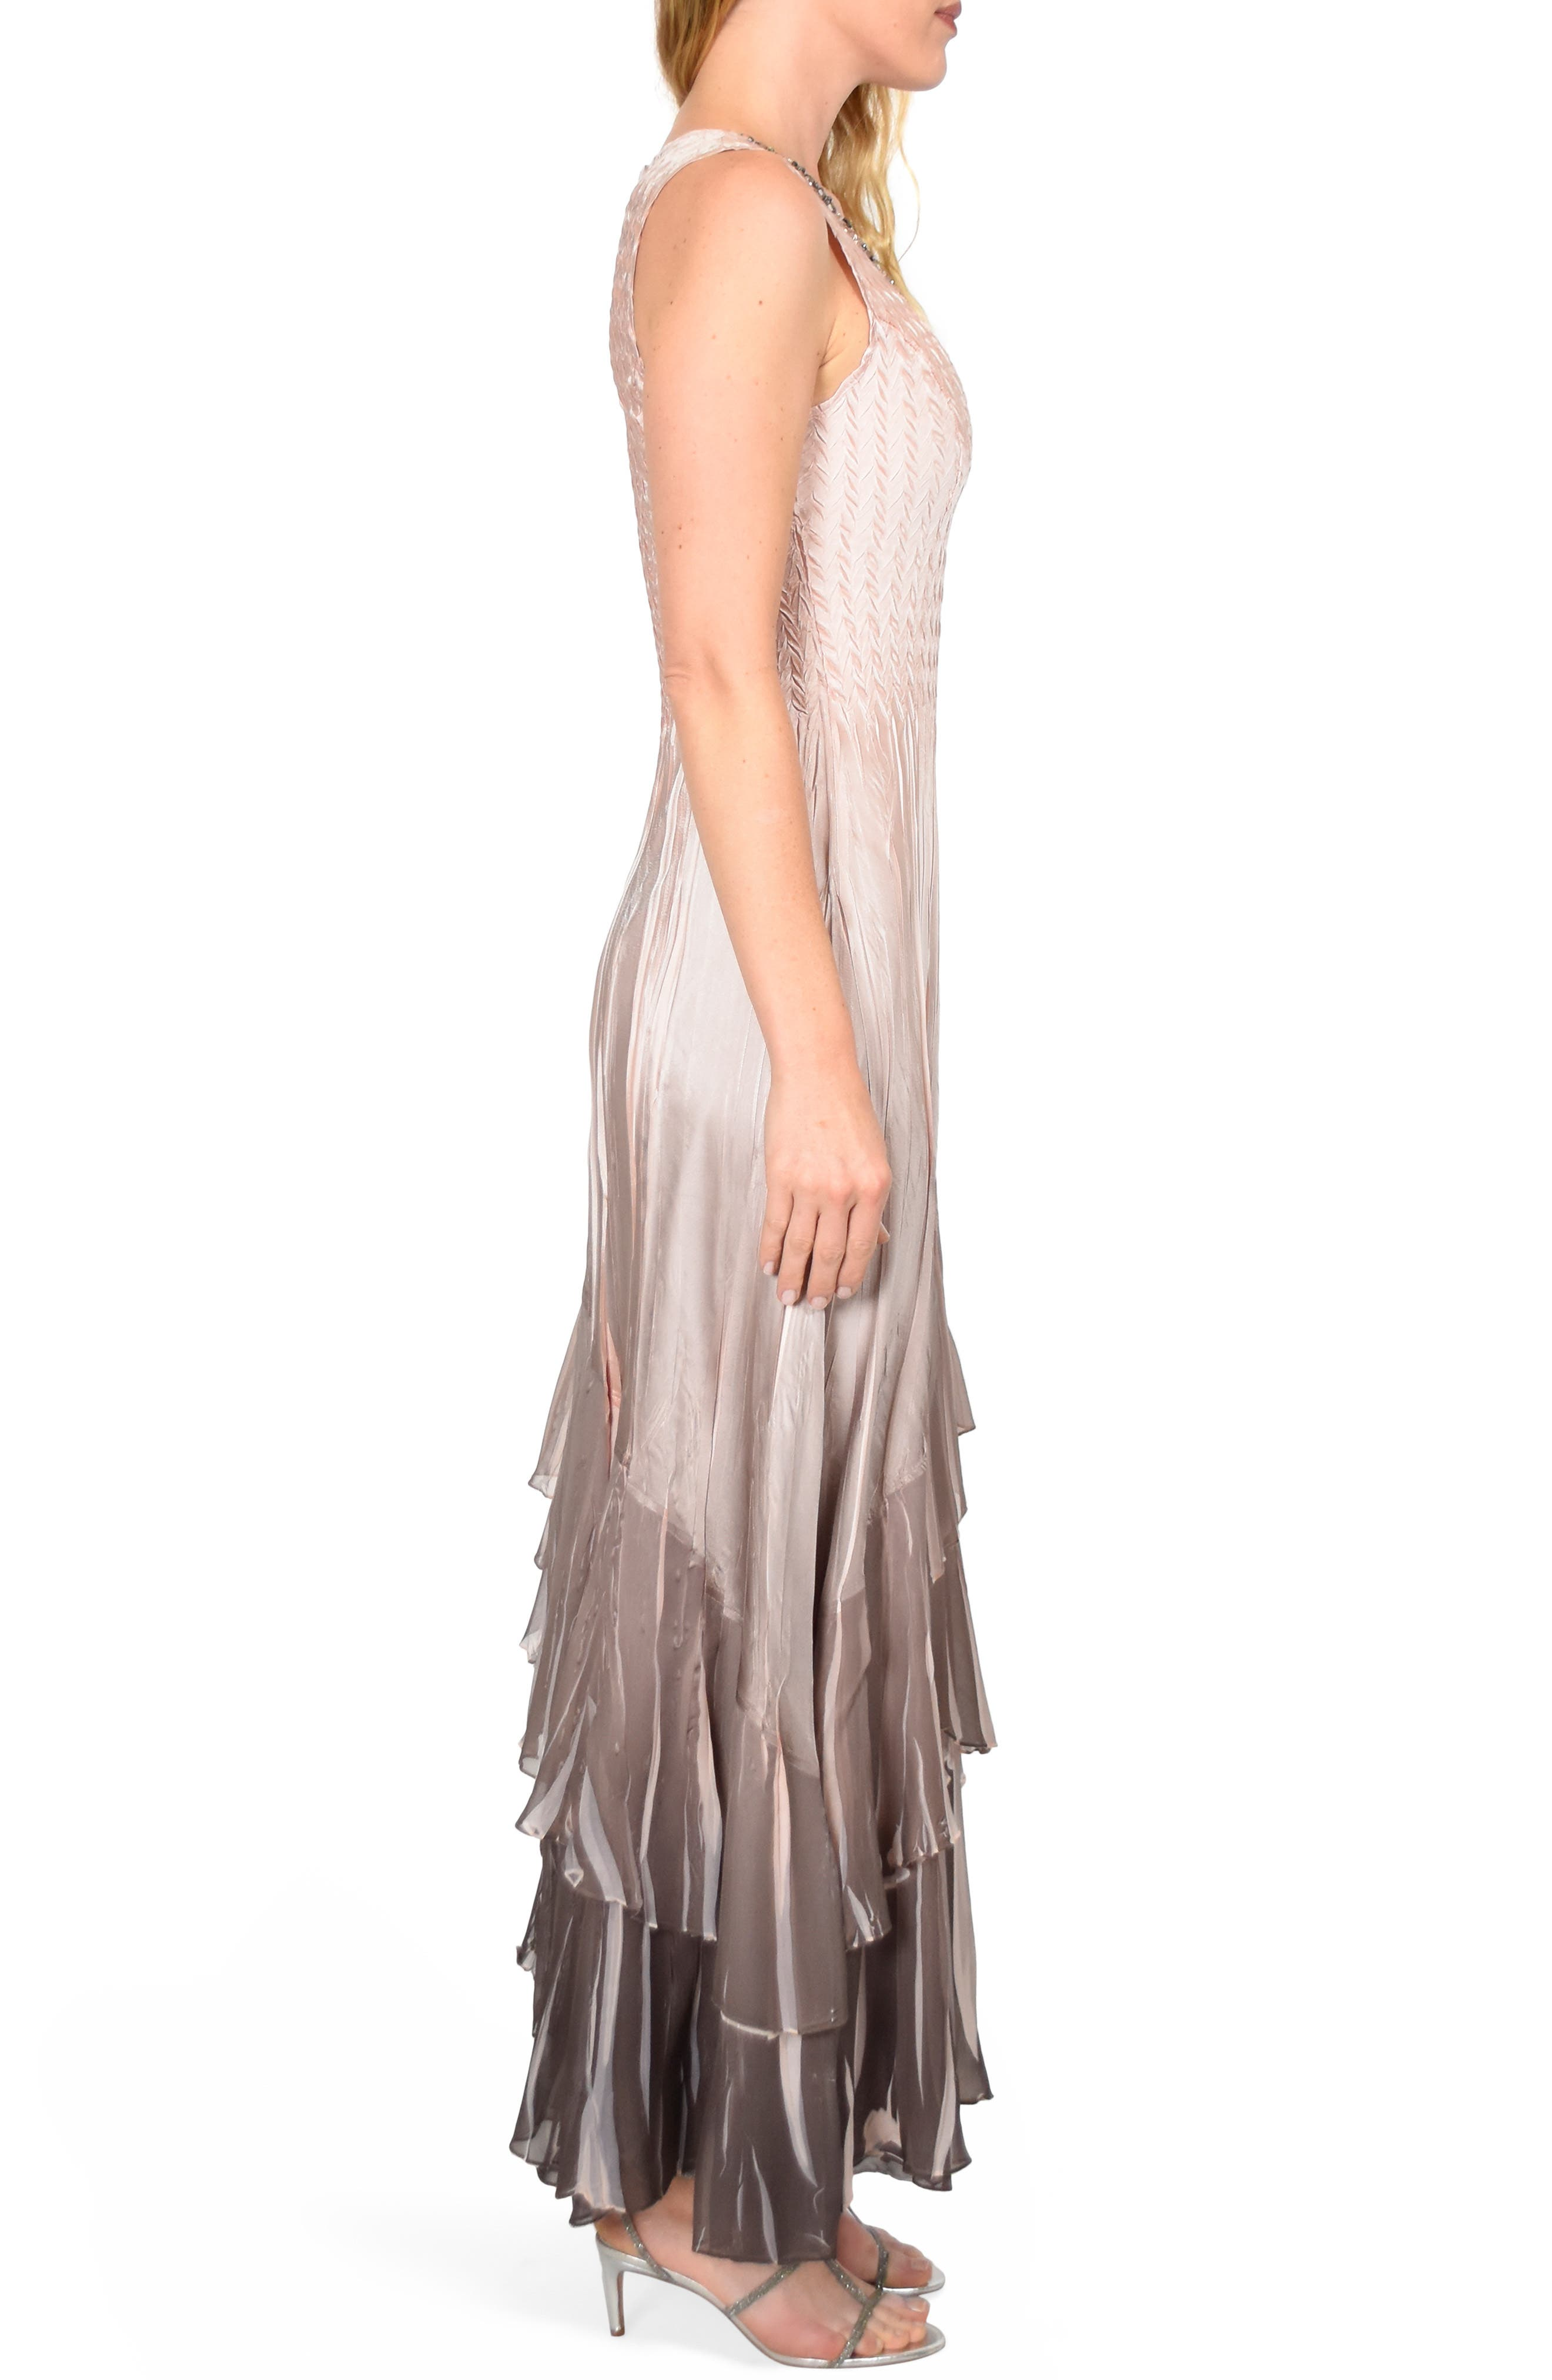 KOMAROV, Layered Maxi Dress with Wrap, Alternate thumbnail 4, color, VINTAGE ROSE CAFE OMBRE